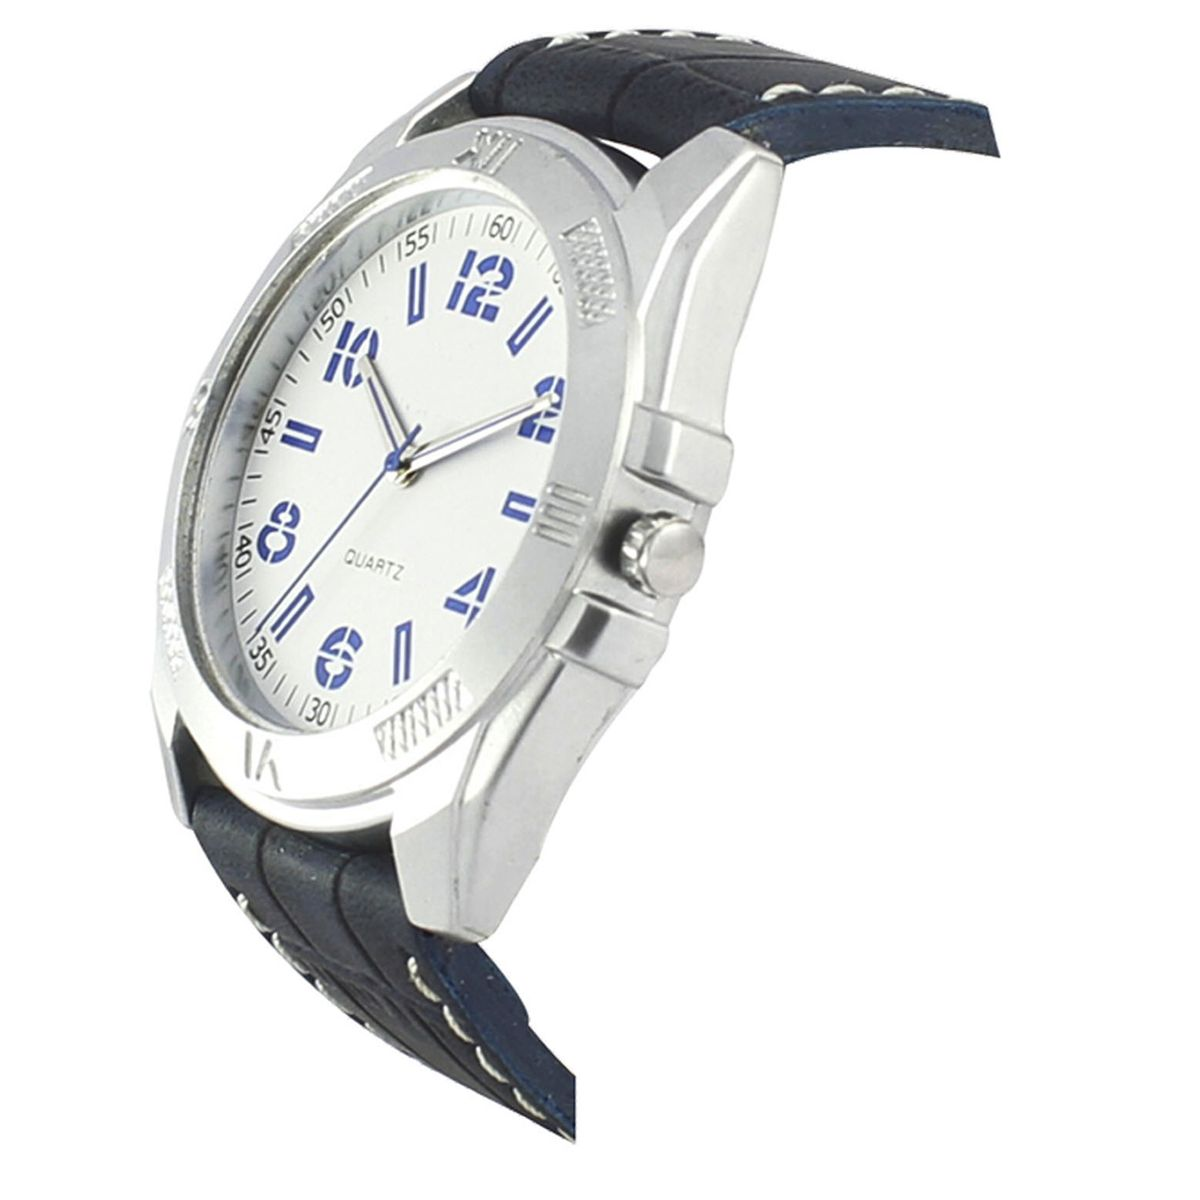 The Shopoholic Casual Analog Newest Arrival White Dial Black Leather Belt Watches For Boys-Men Watch